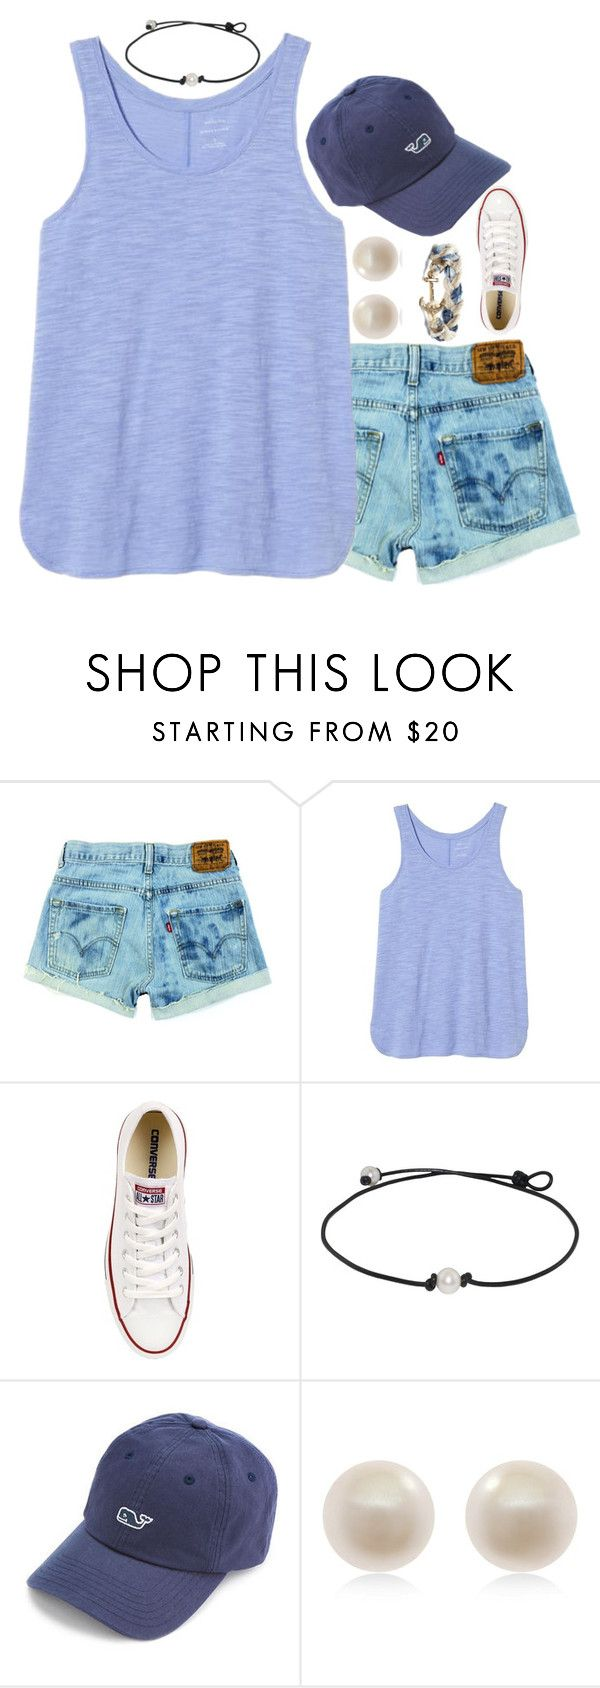 2832 best My Style images on Pinterest | Casual wear, Outfit summer ...